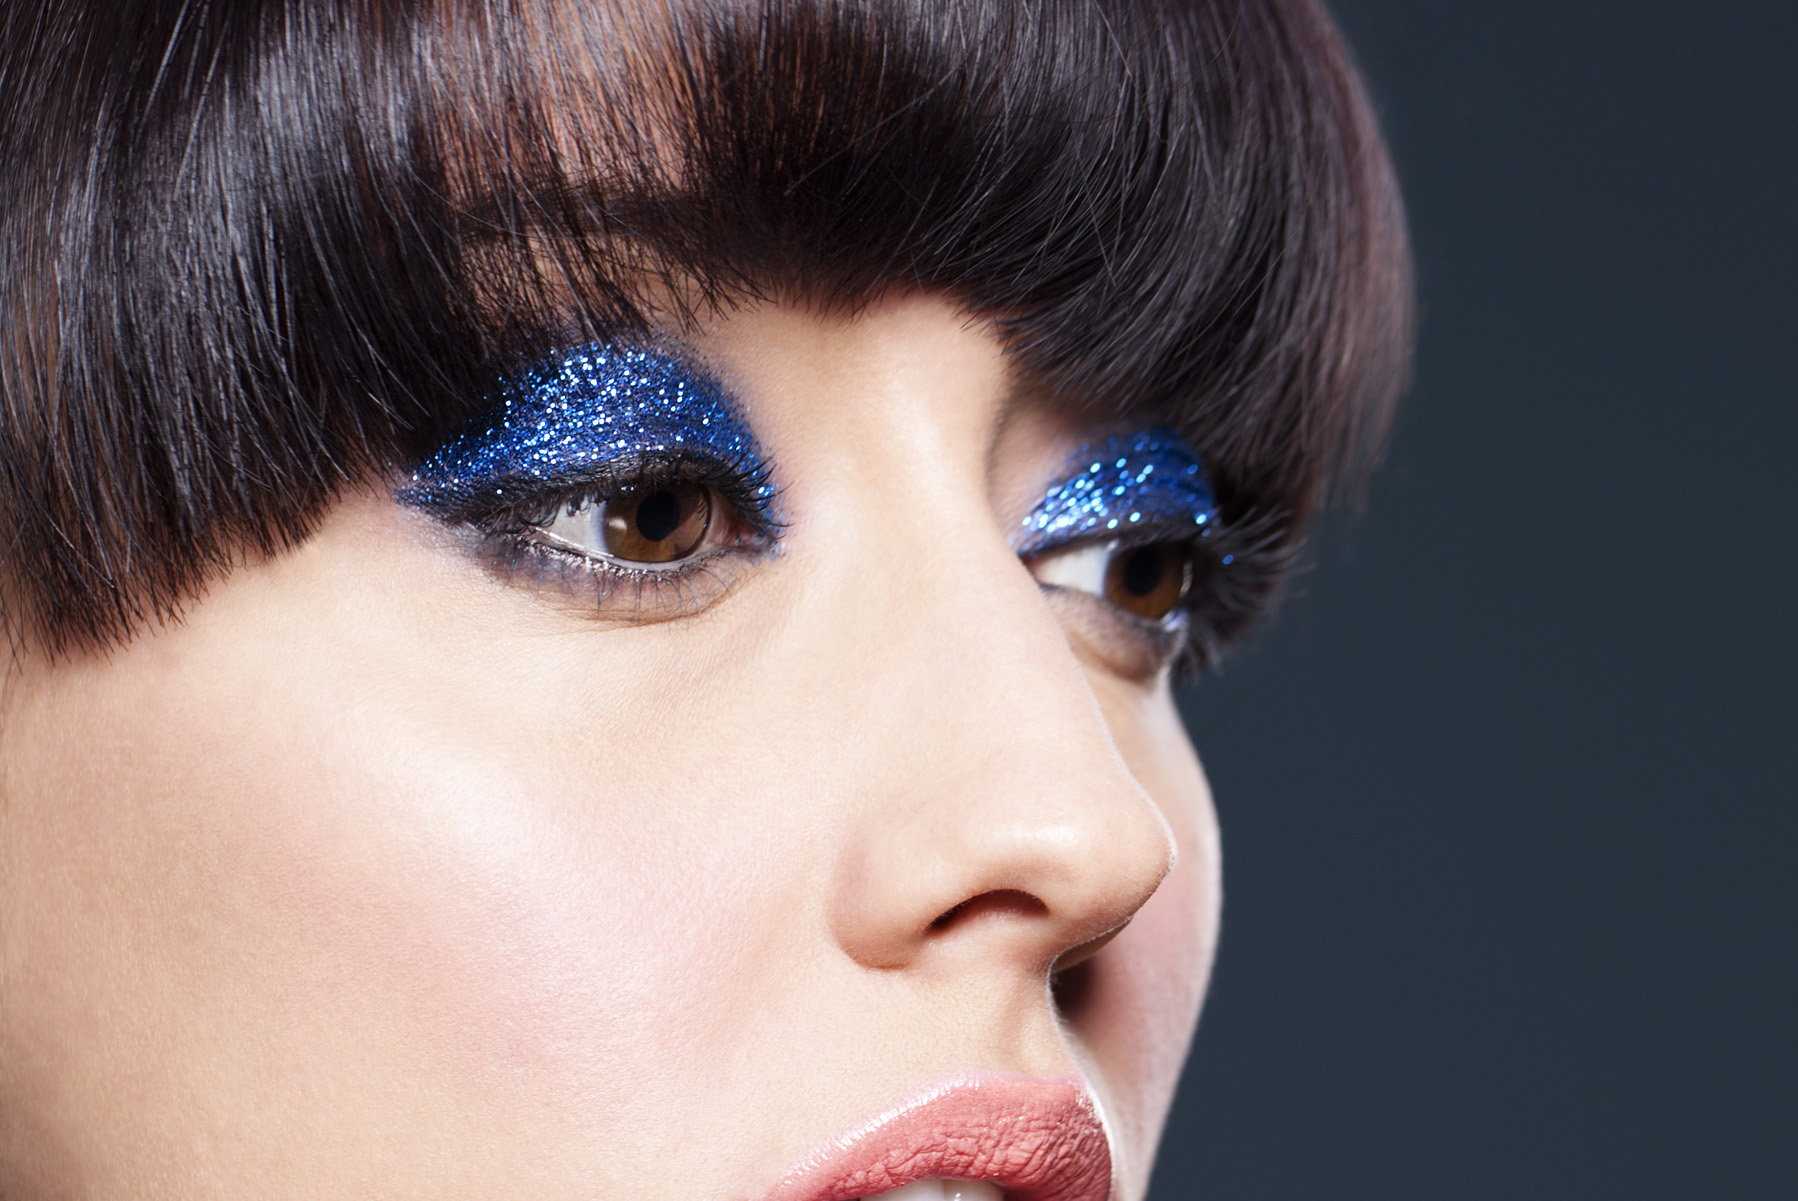 Photo: Hackney studio beauty campaign photography photographer retoucher Margaret Yescombe, model Felicity, perfect skin, blue glitter eyeshadow